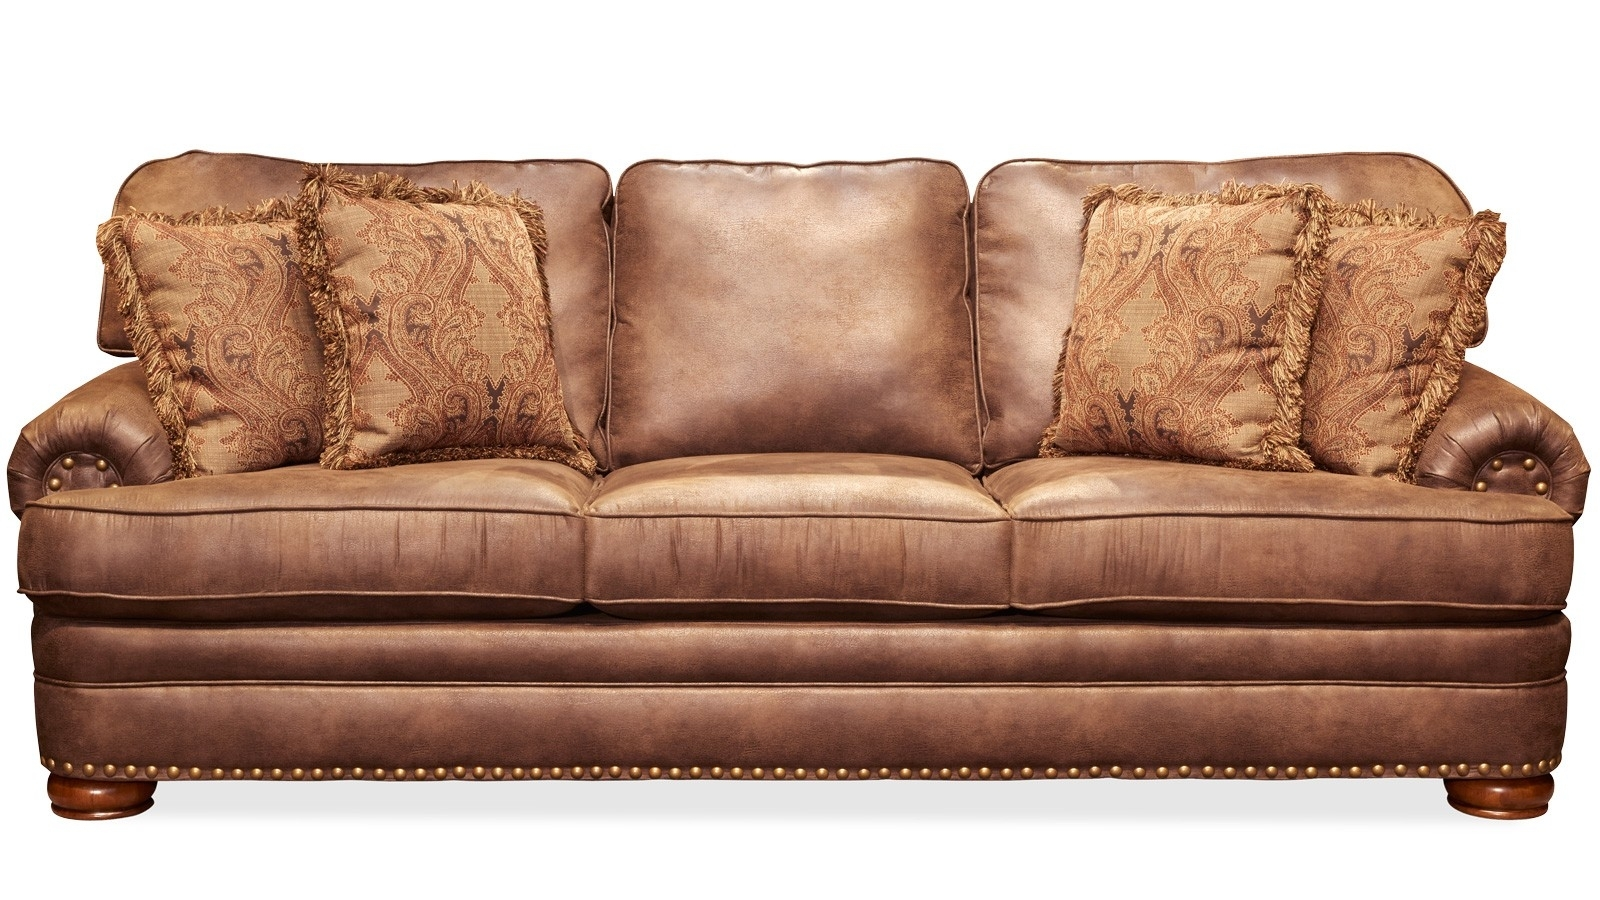 El Paso Sofa | Gallery Furniture With El Paso Texas Sectional Sofas (View 2 of 10)